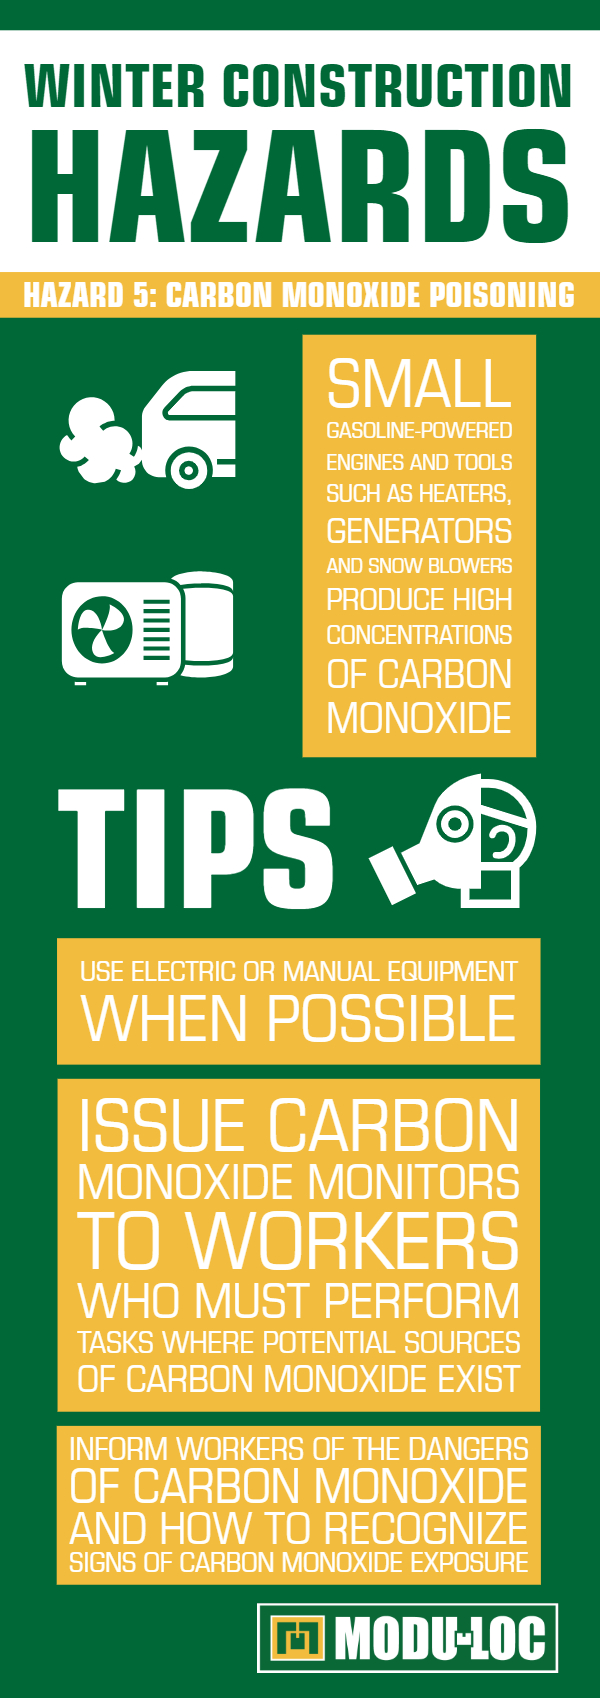 Winter Construction Hazard #5: Carbon Monoxide Poisoning. Small gasoline-powered engines and tools such as heaters, generators, and snow blowers produce high concentrations of carbon monoxide.